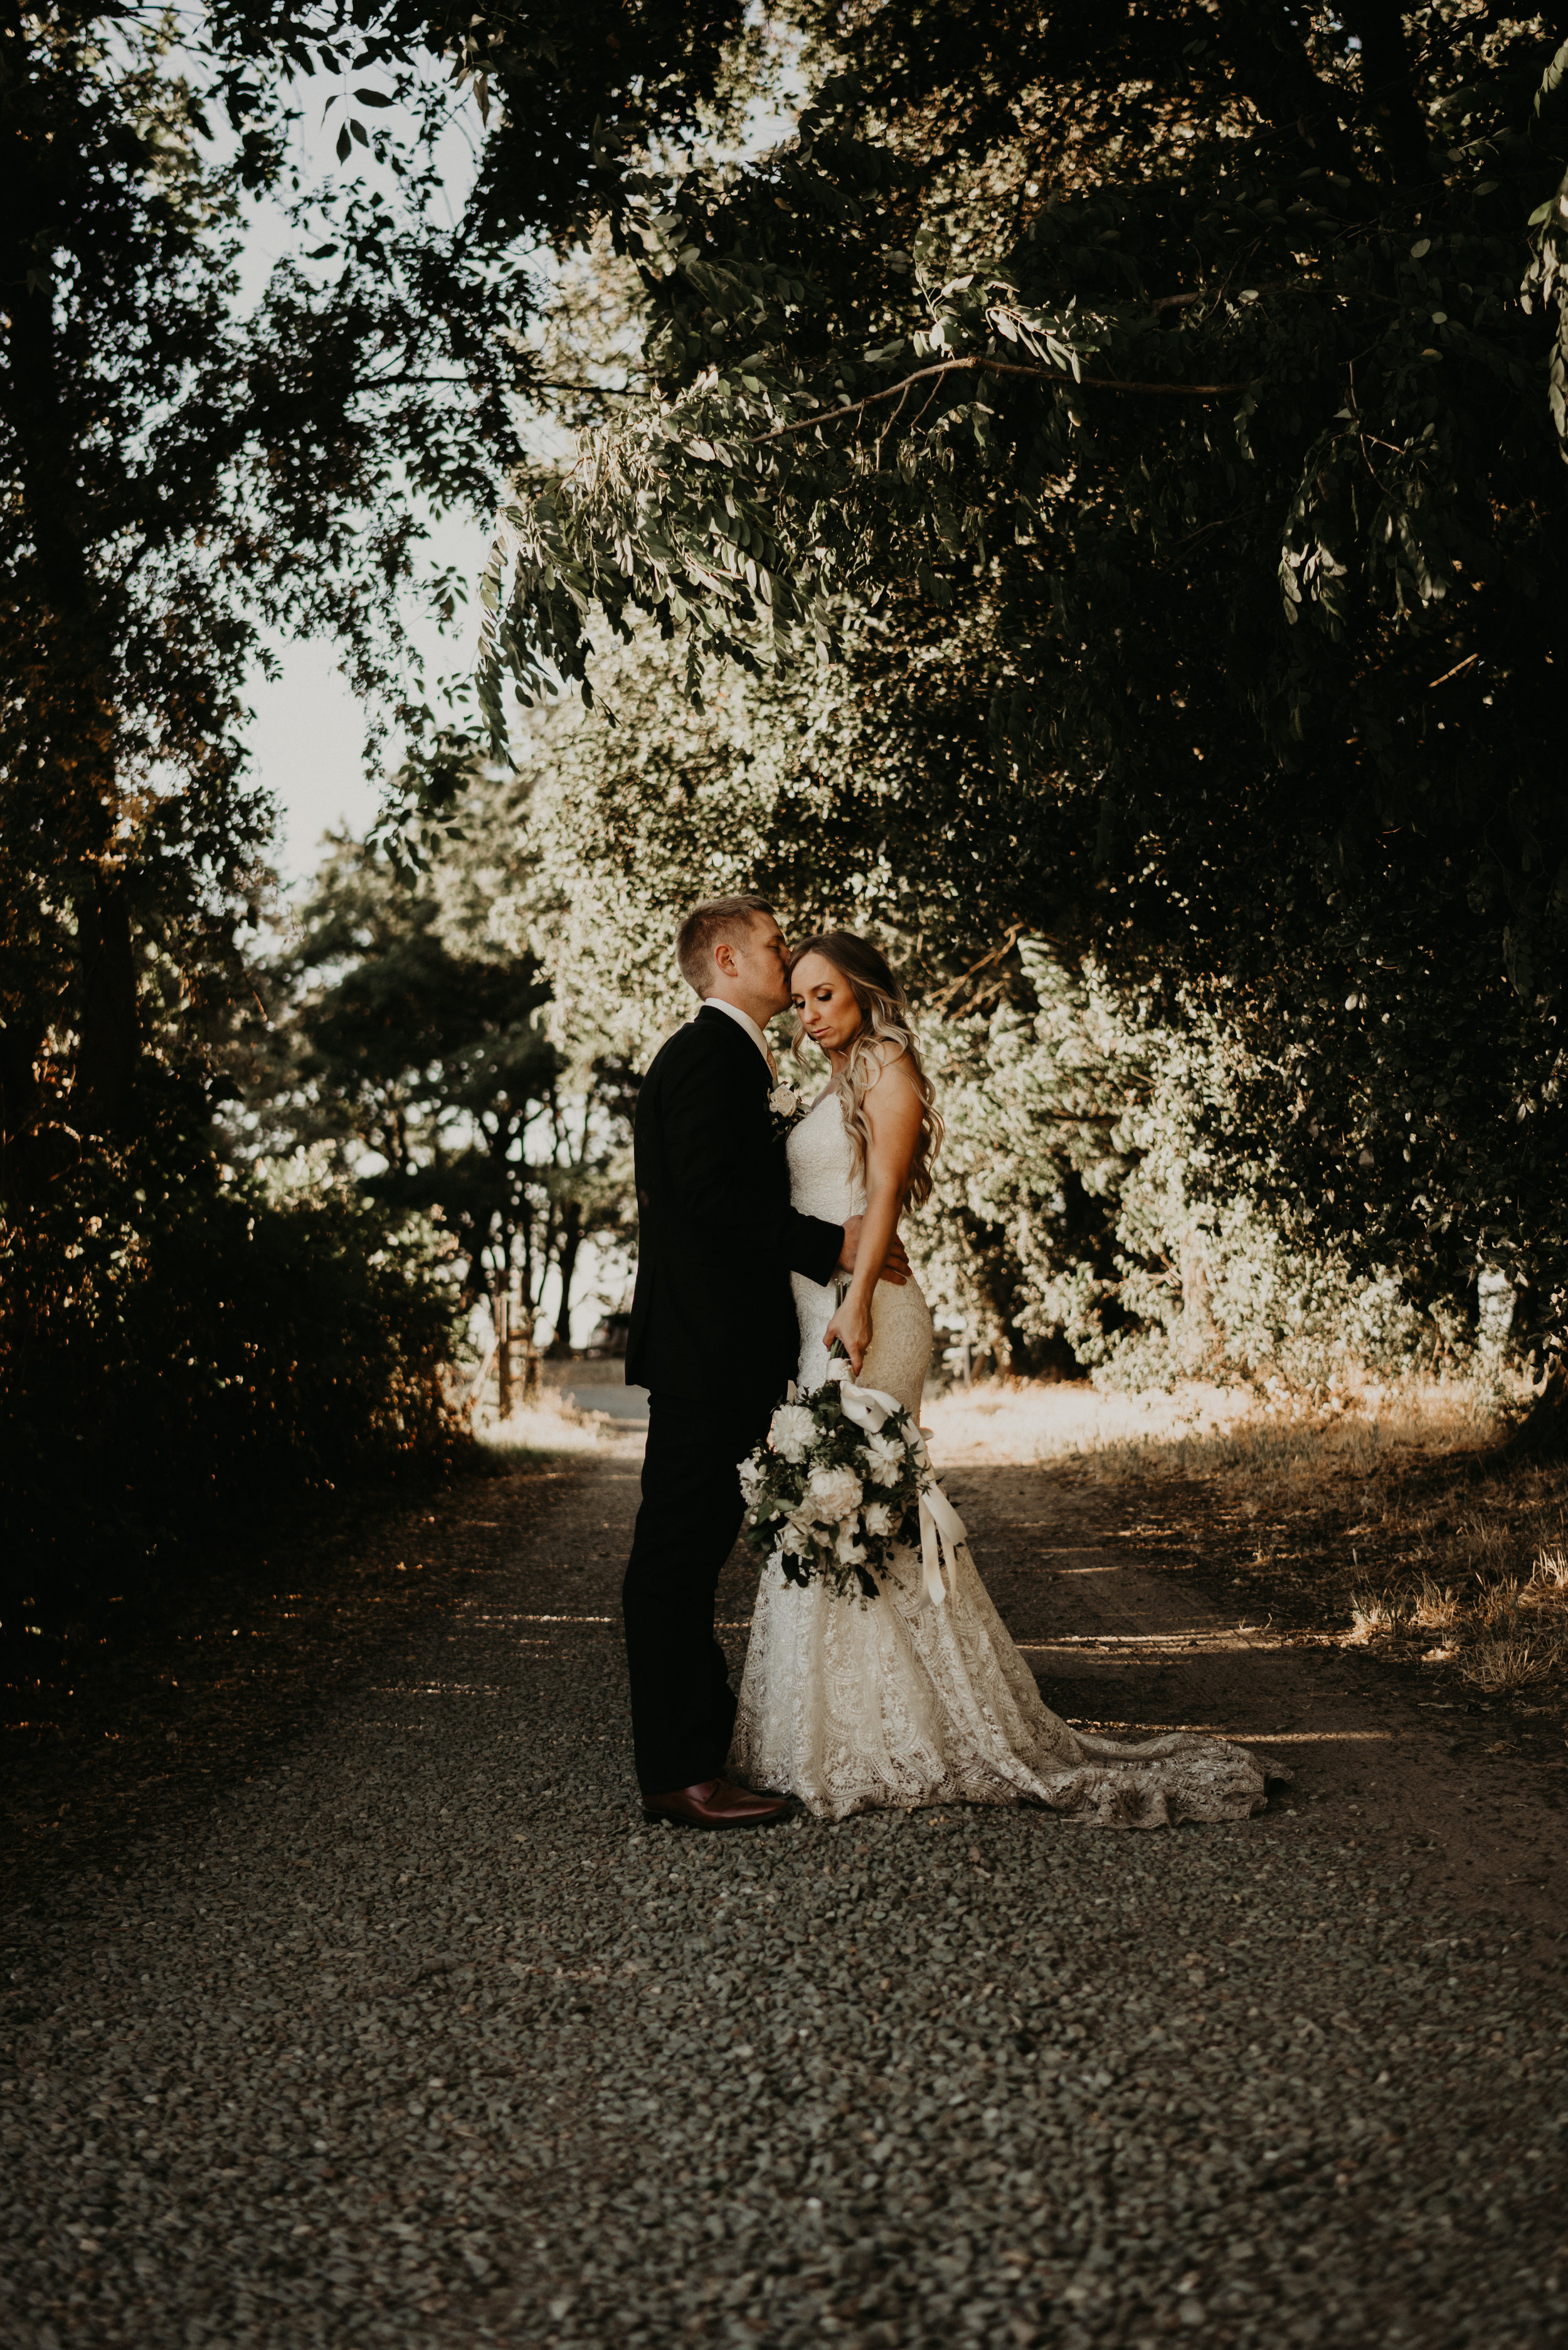 """""""Thomas and I agreed from the beginning that this was our day,"""" explains Jessica. """"We didn't want high expectations to interrupt our joy and excitement surrounding our wedding."""""""